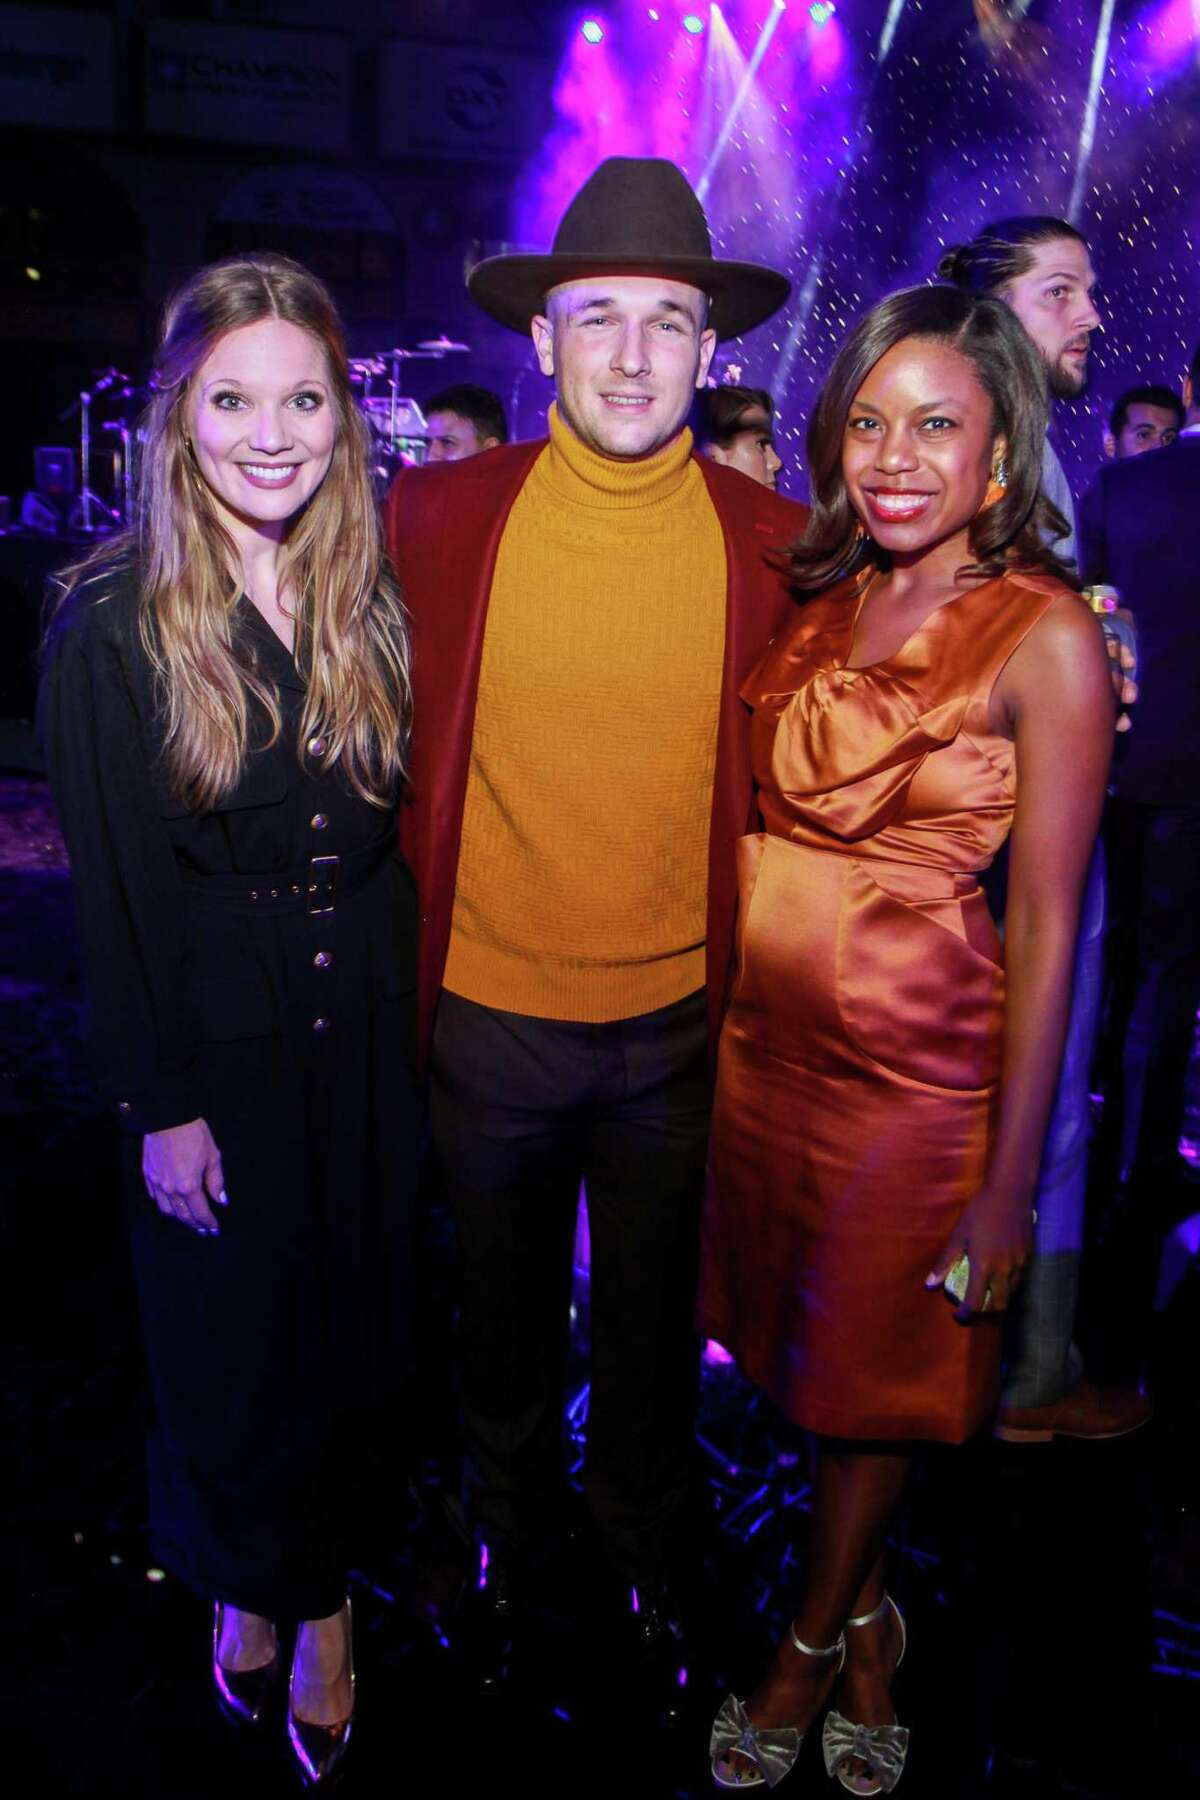 Grace Gibson, from left, Alex Bregman of the Astros, and Amber Elliott at the Astros Diamond Dreams Gala at Minute Maid Park.